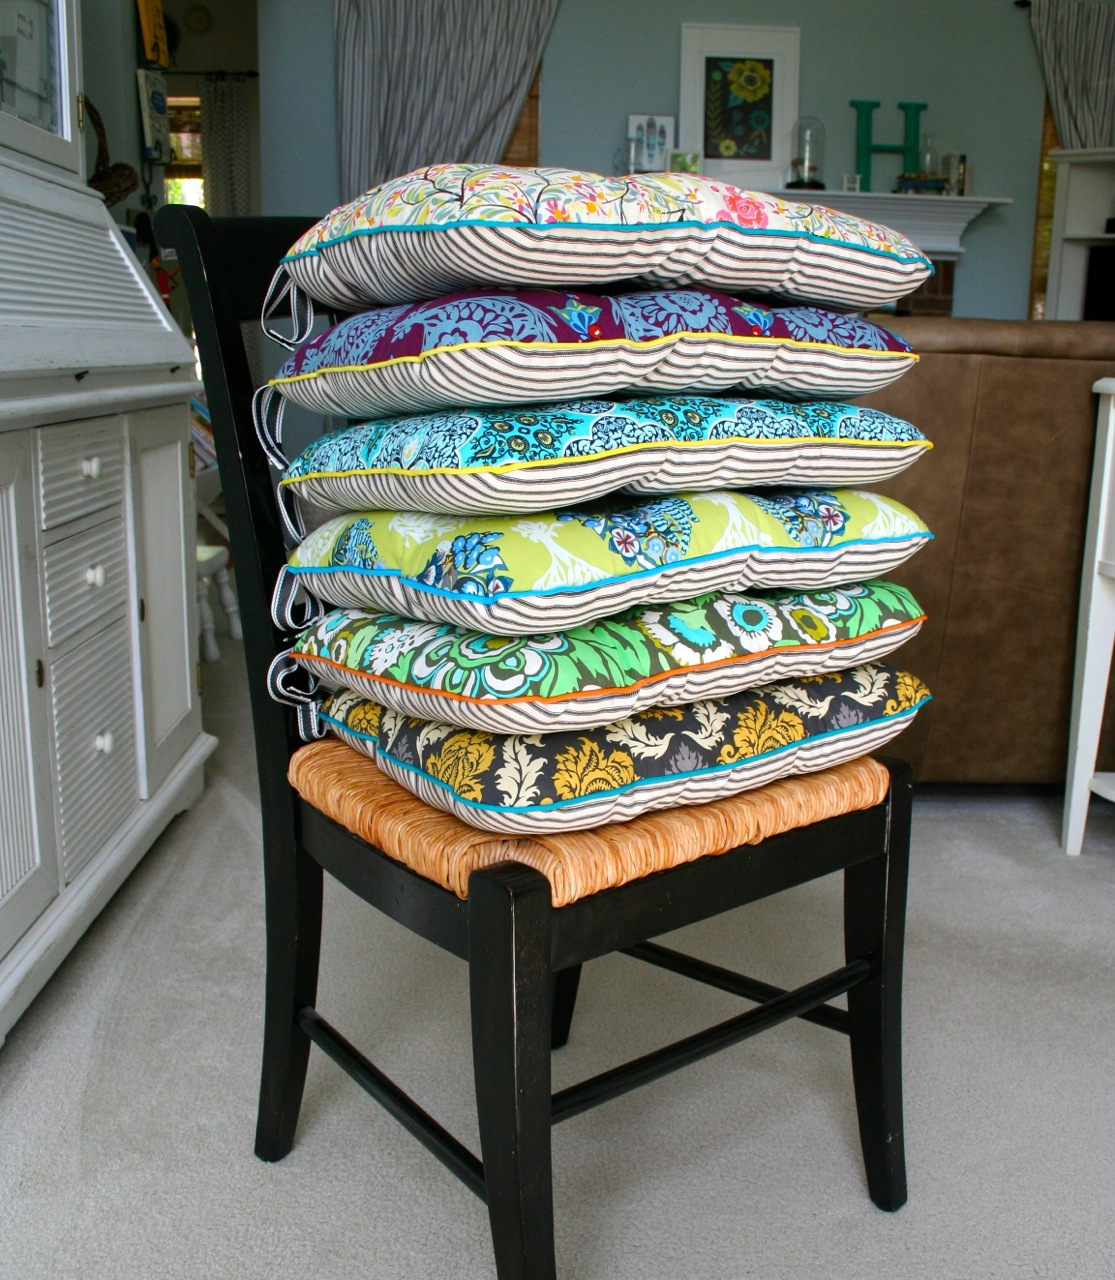 Kitchen Chair Cushions. Kitchen Chair Cushions I - Brint.co